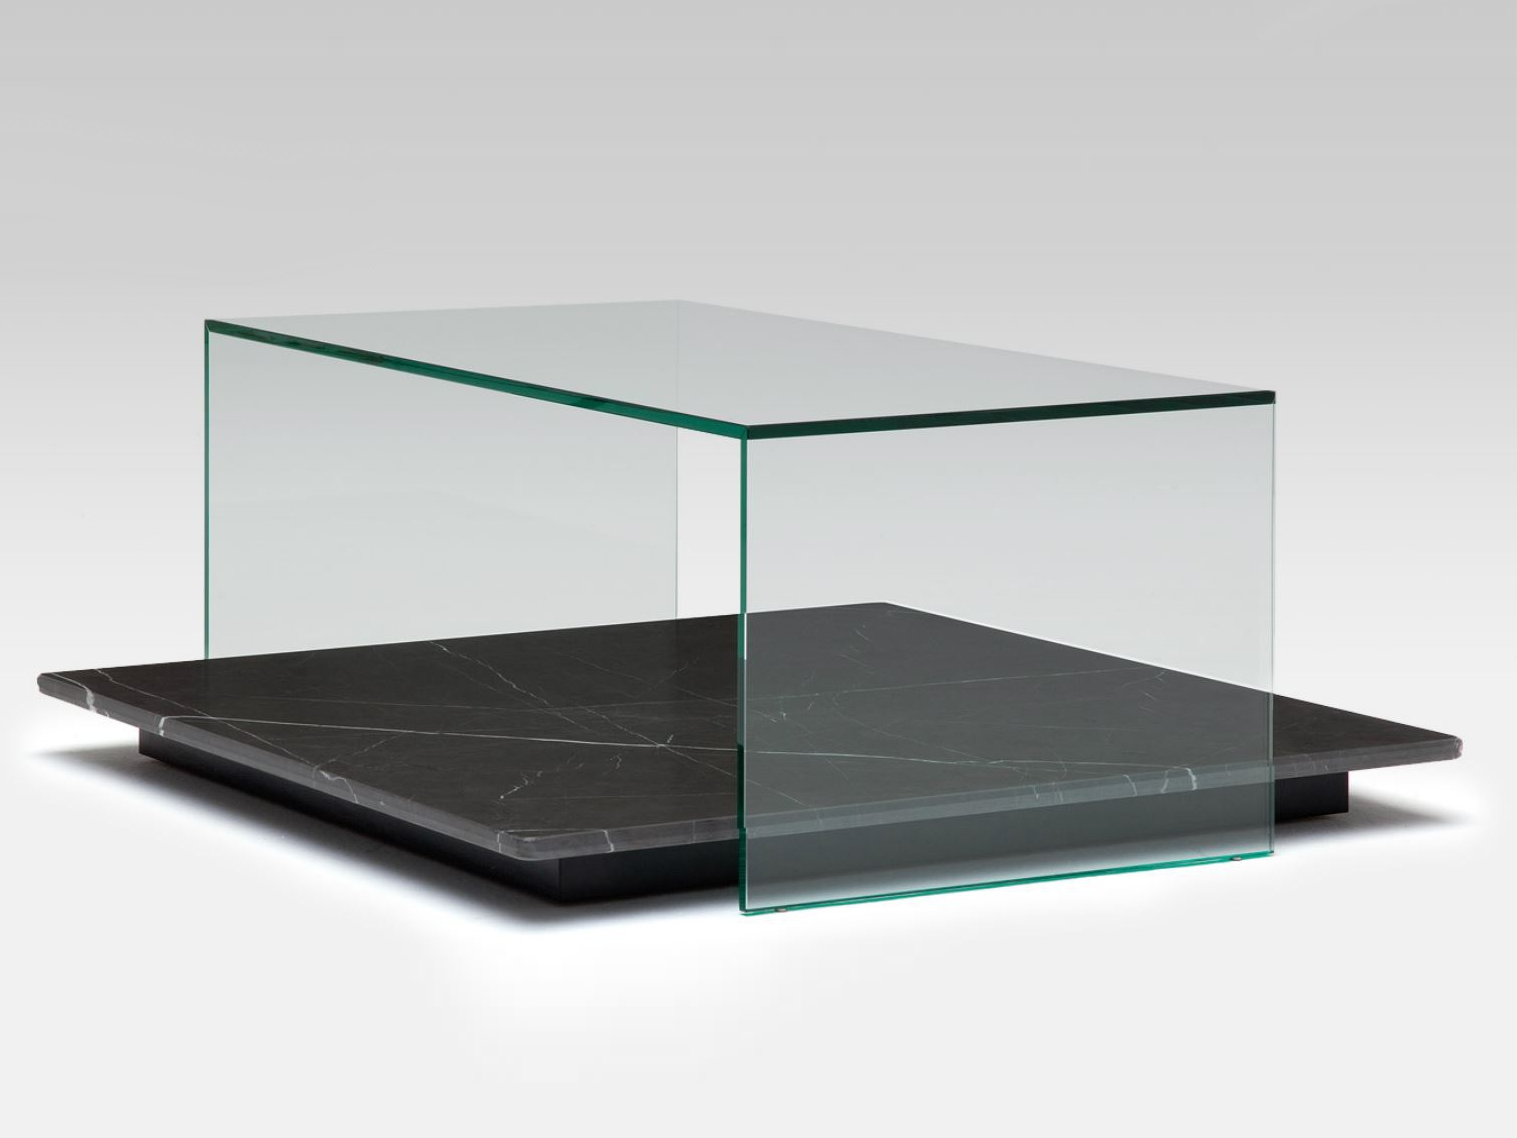 Low Glass Coffee Table Rolf Benz 970 By Rolf Benz Design Cuno Frommherz